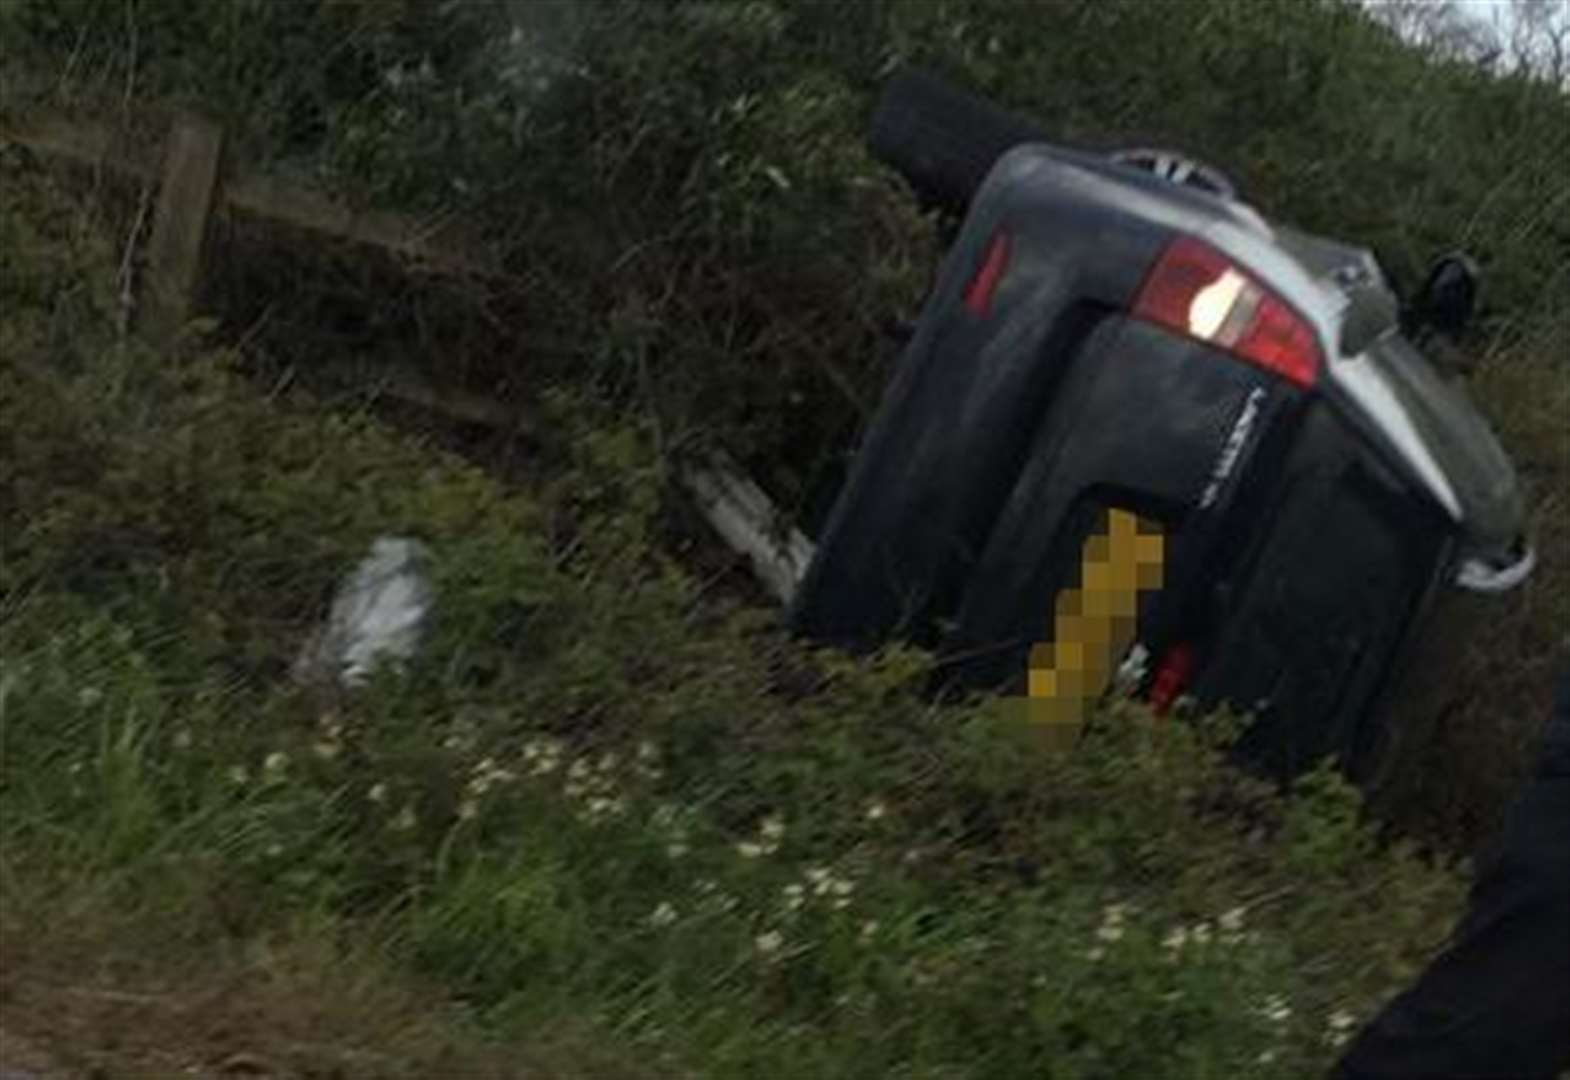 Delays on M2 as car overturns